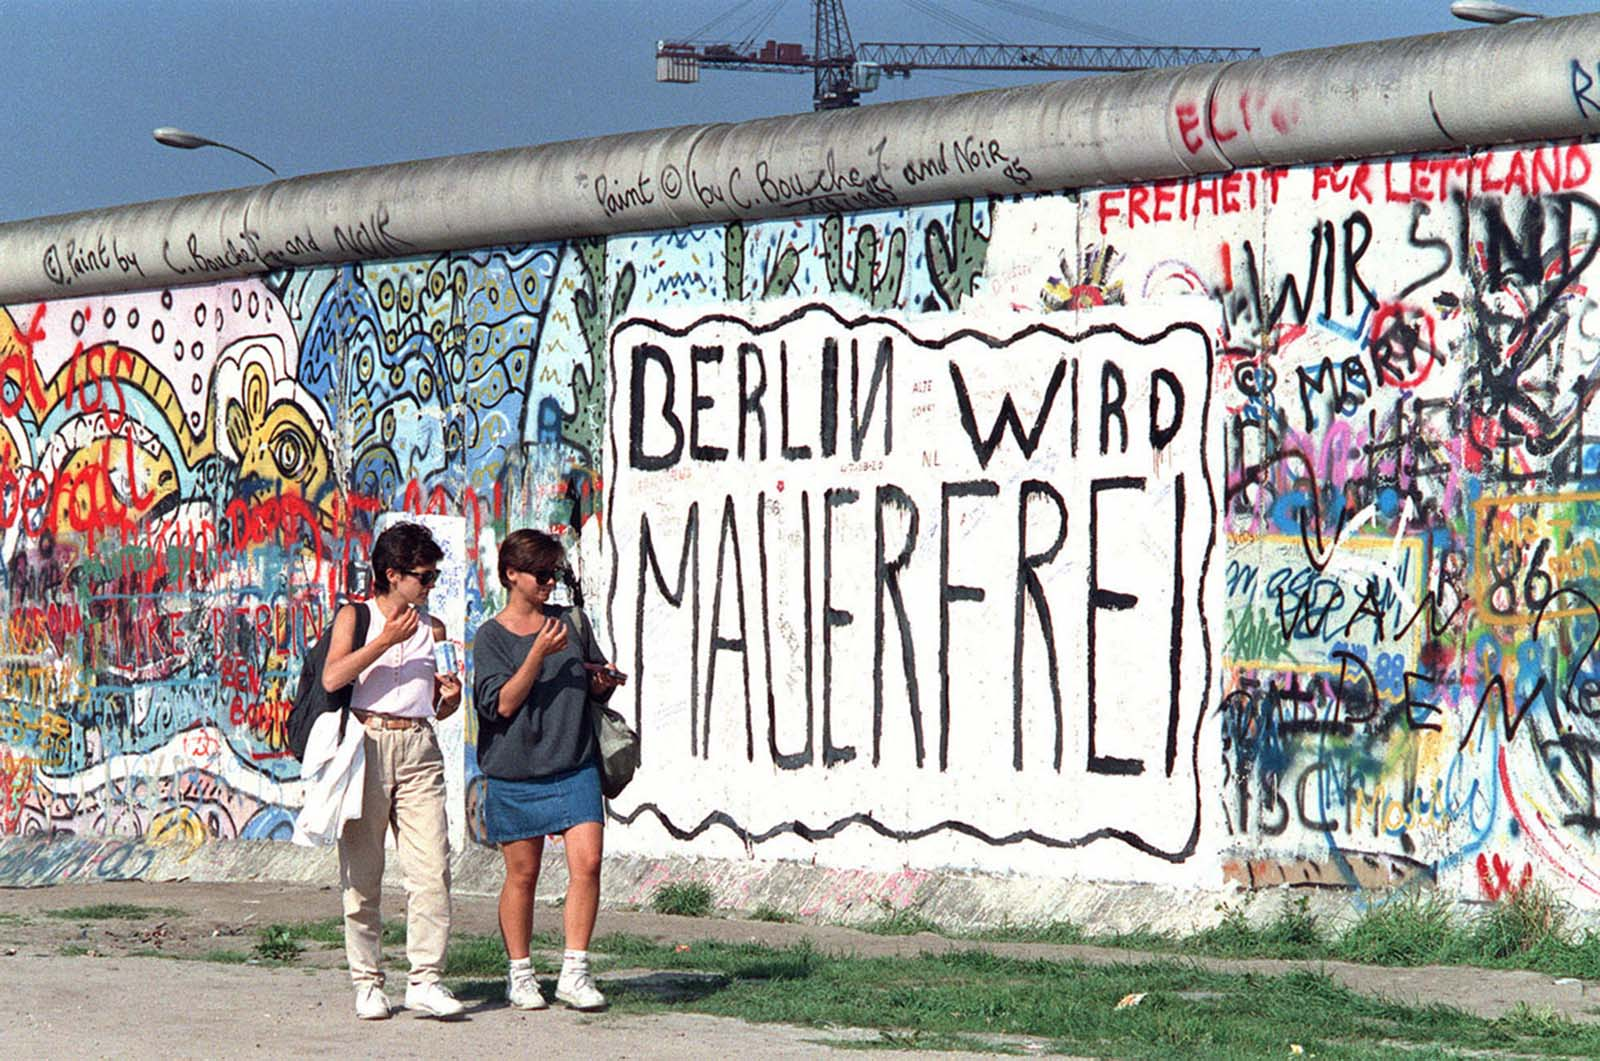 In this photo taken on August 11, 1988, the year before the Berlin Wall came down, a message is seen painted on the wall at Potsdamer Platz: